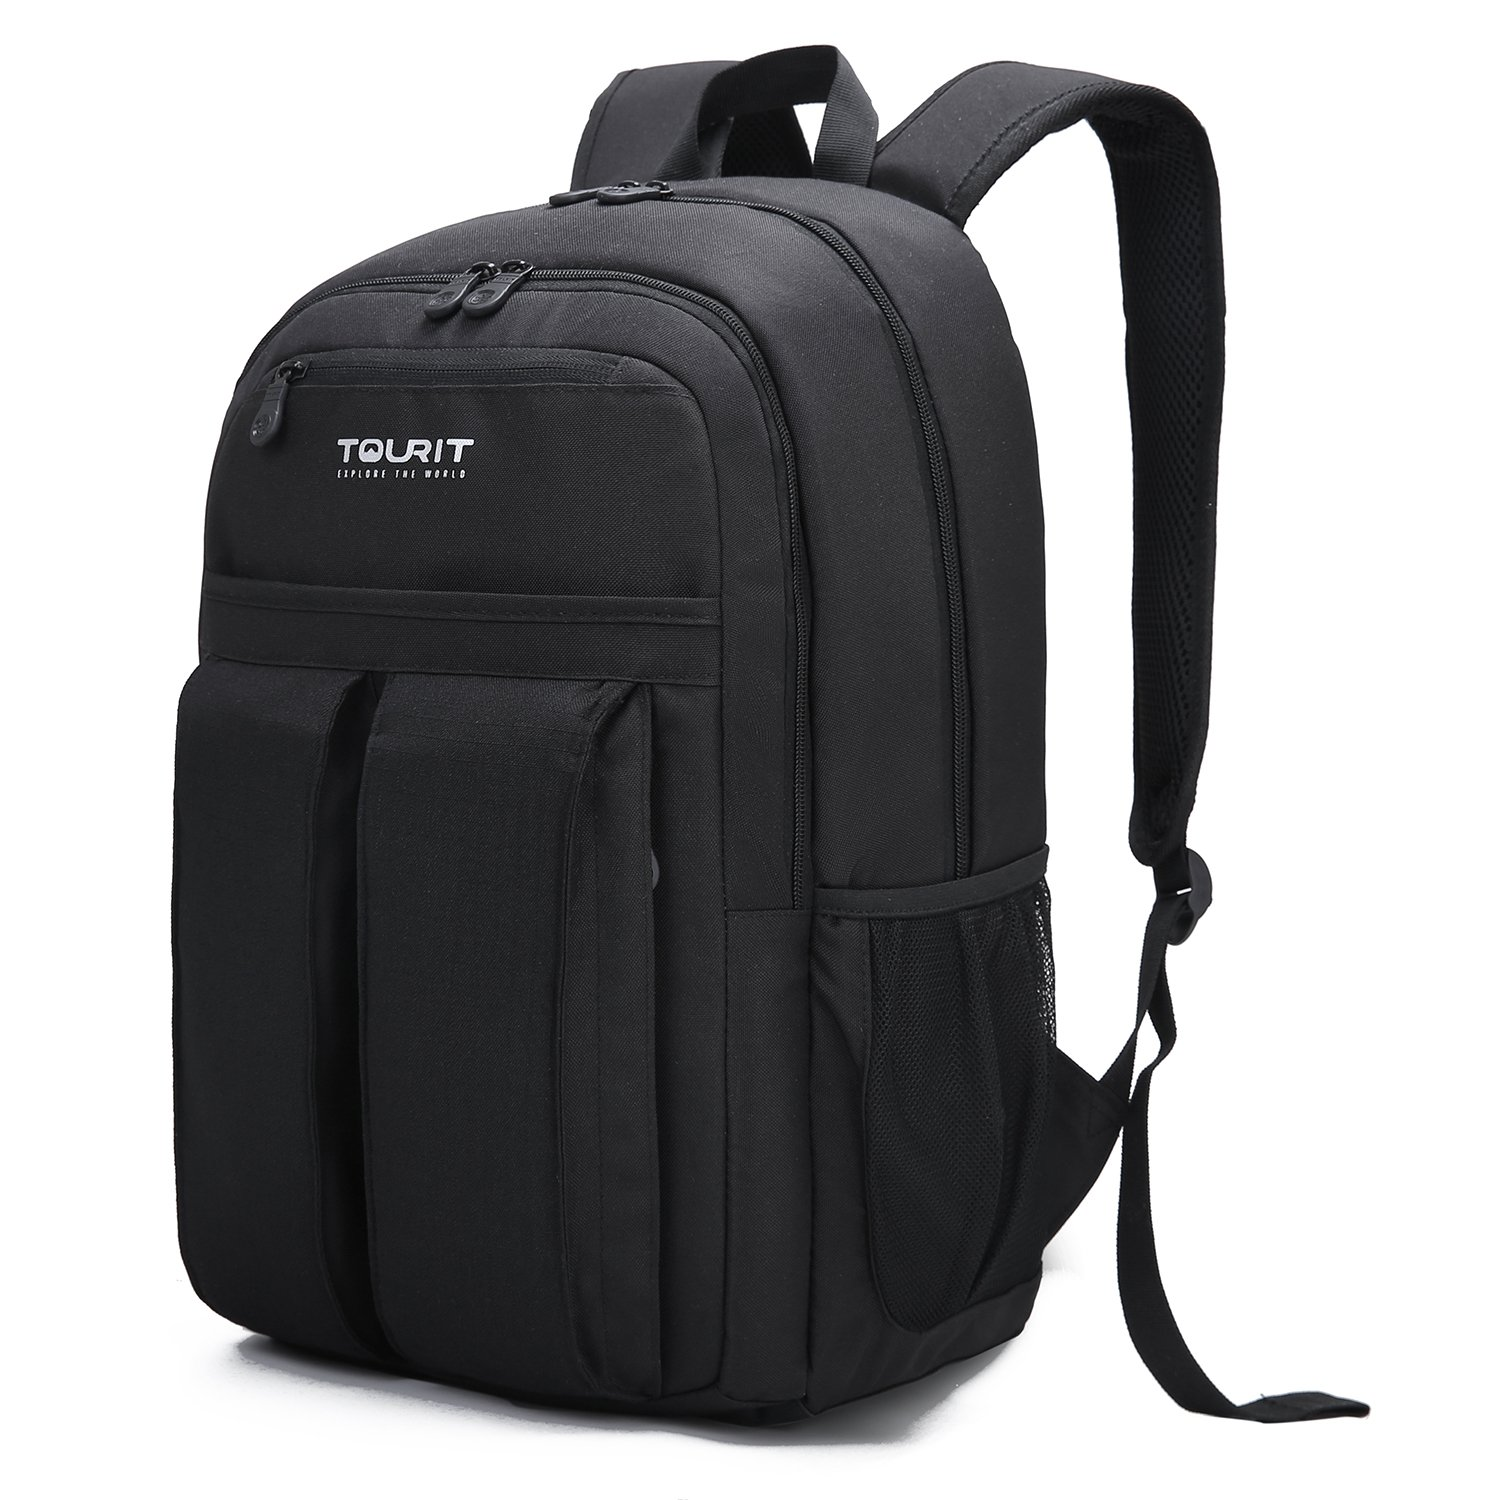 TOURIT Soft Back Pack Cooler Insulated Cooler Backpack Bag Lightweight Backpack with Cooler Large Capacity for Men Women to Hiking, Sports, Travel, Camping, Picnics, 21 Cans